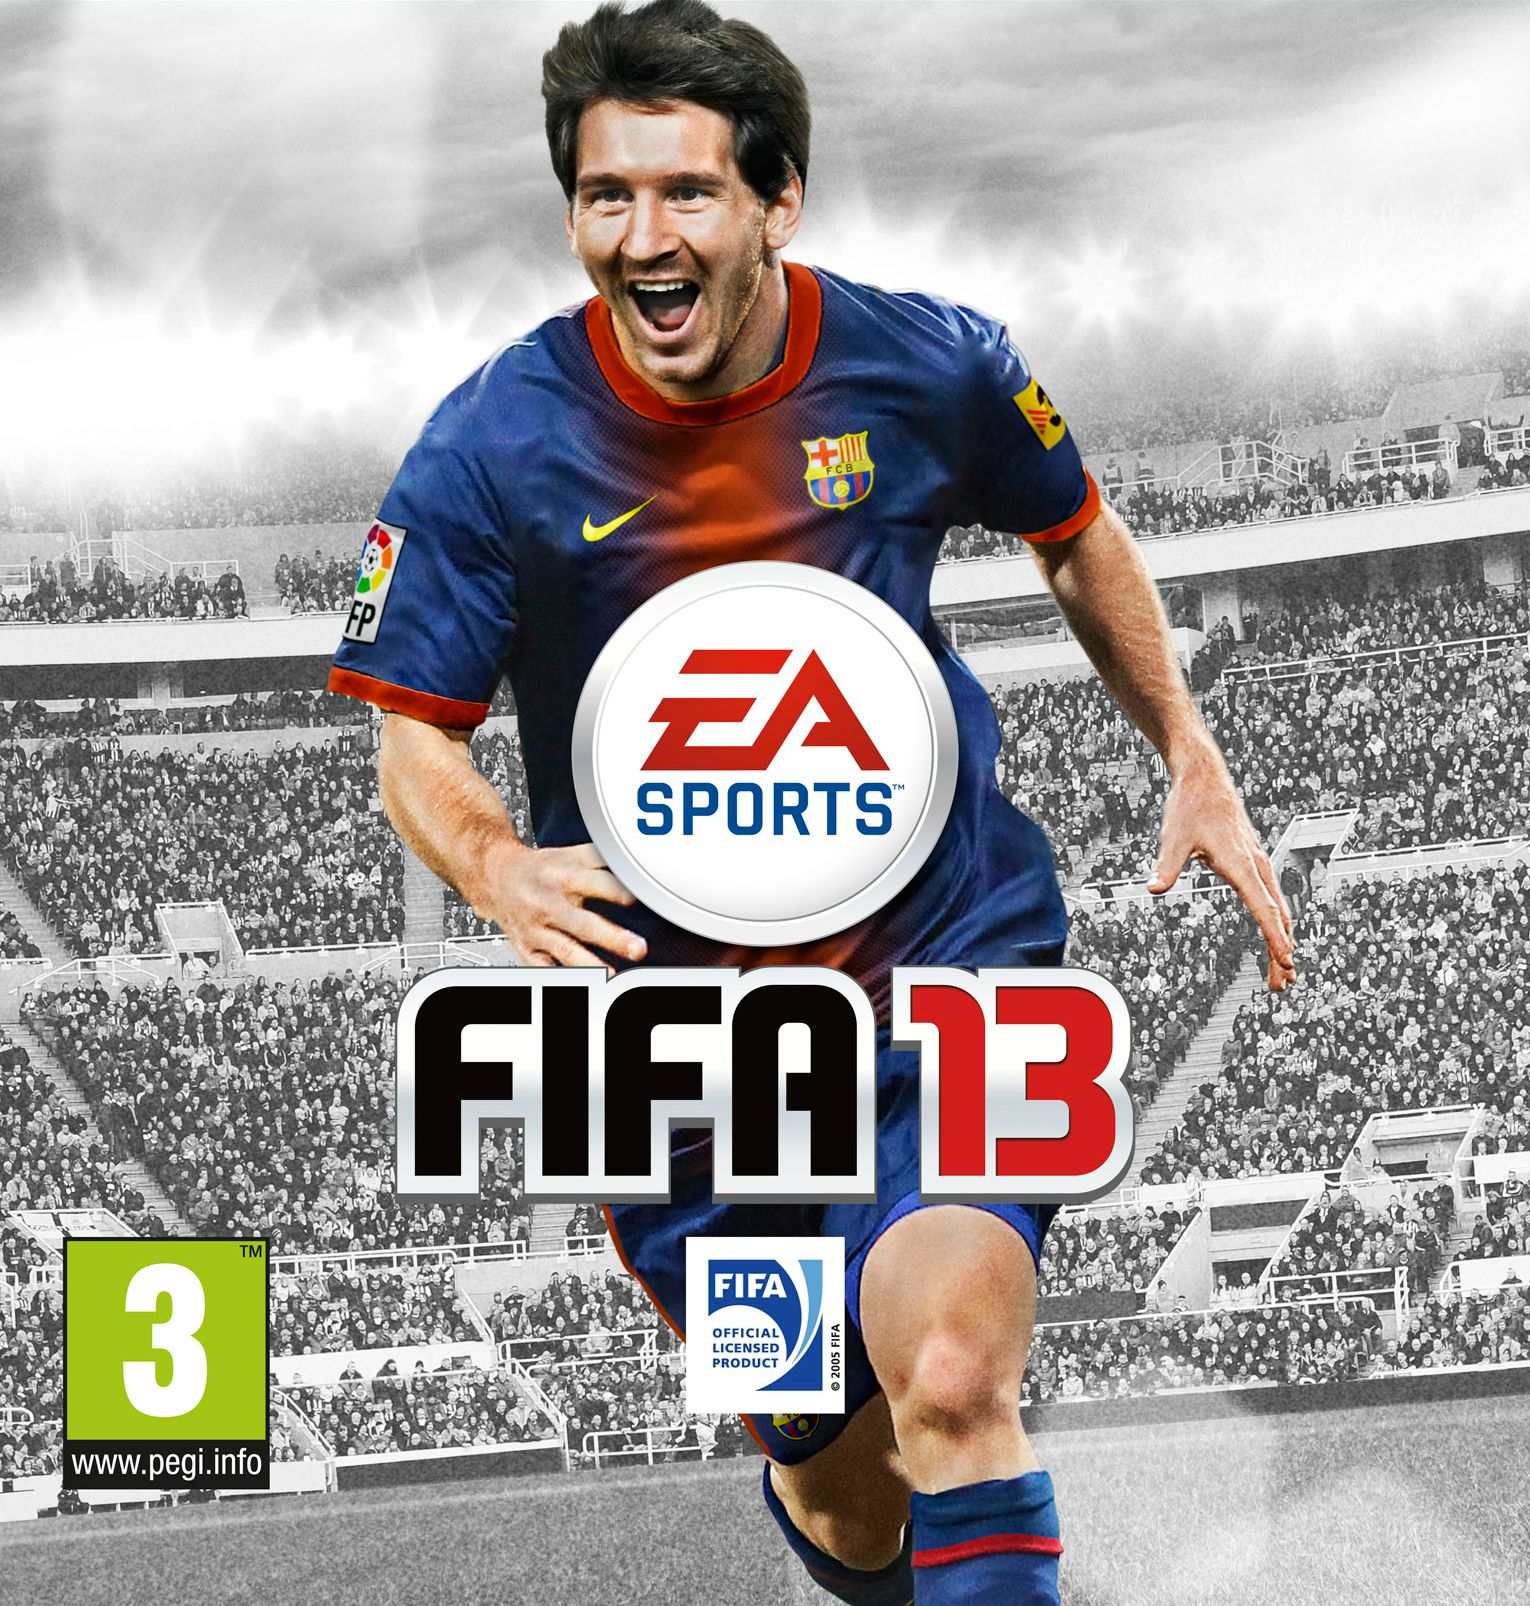 FIFA 13 Official Cover